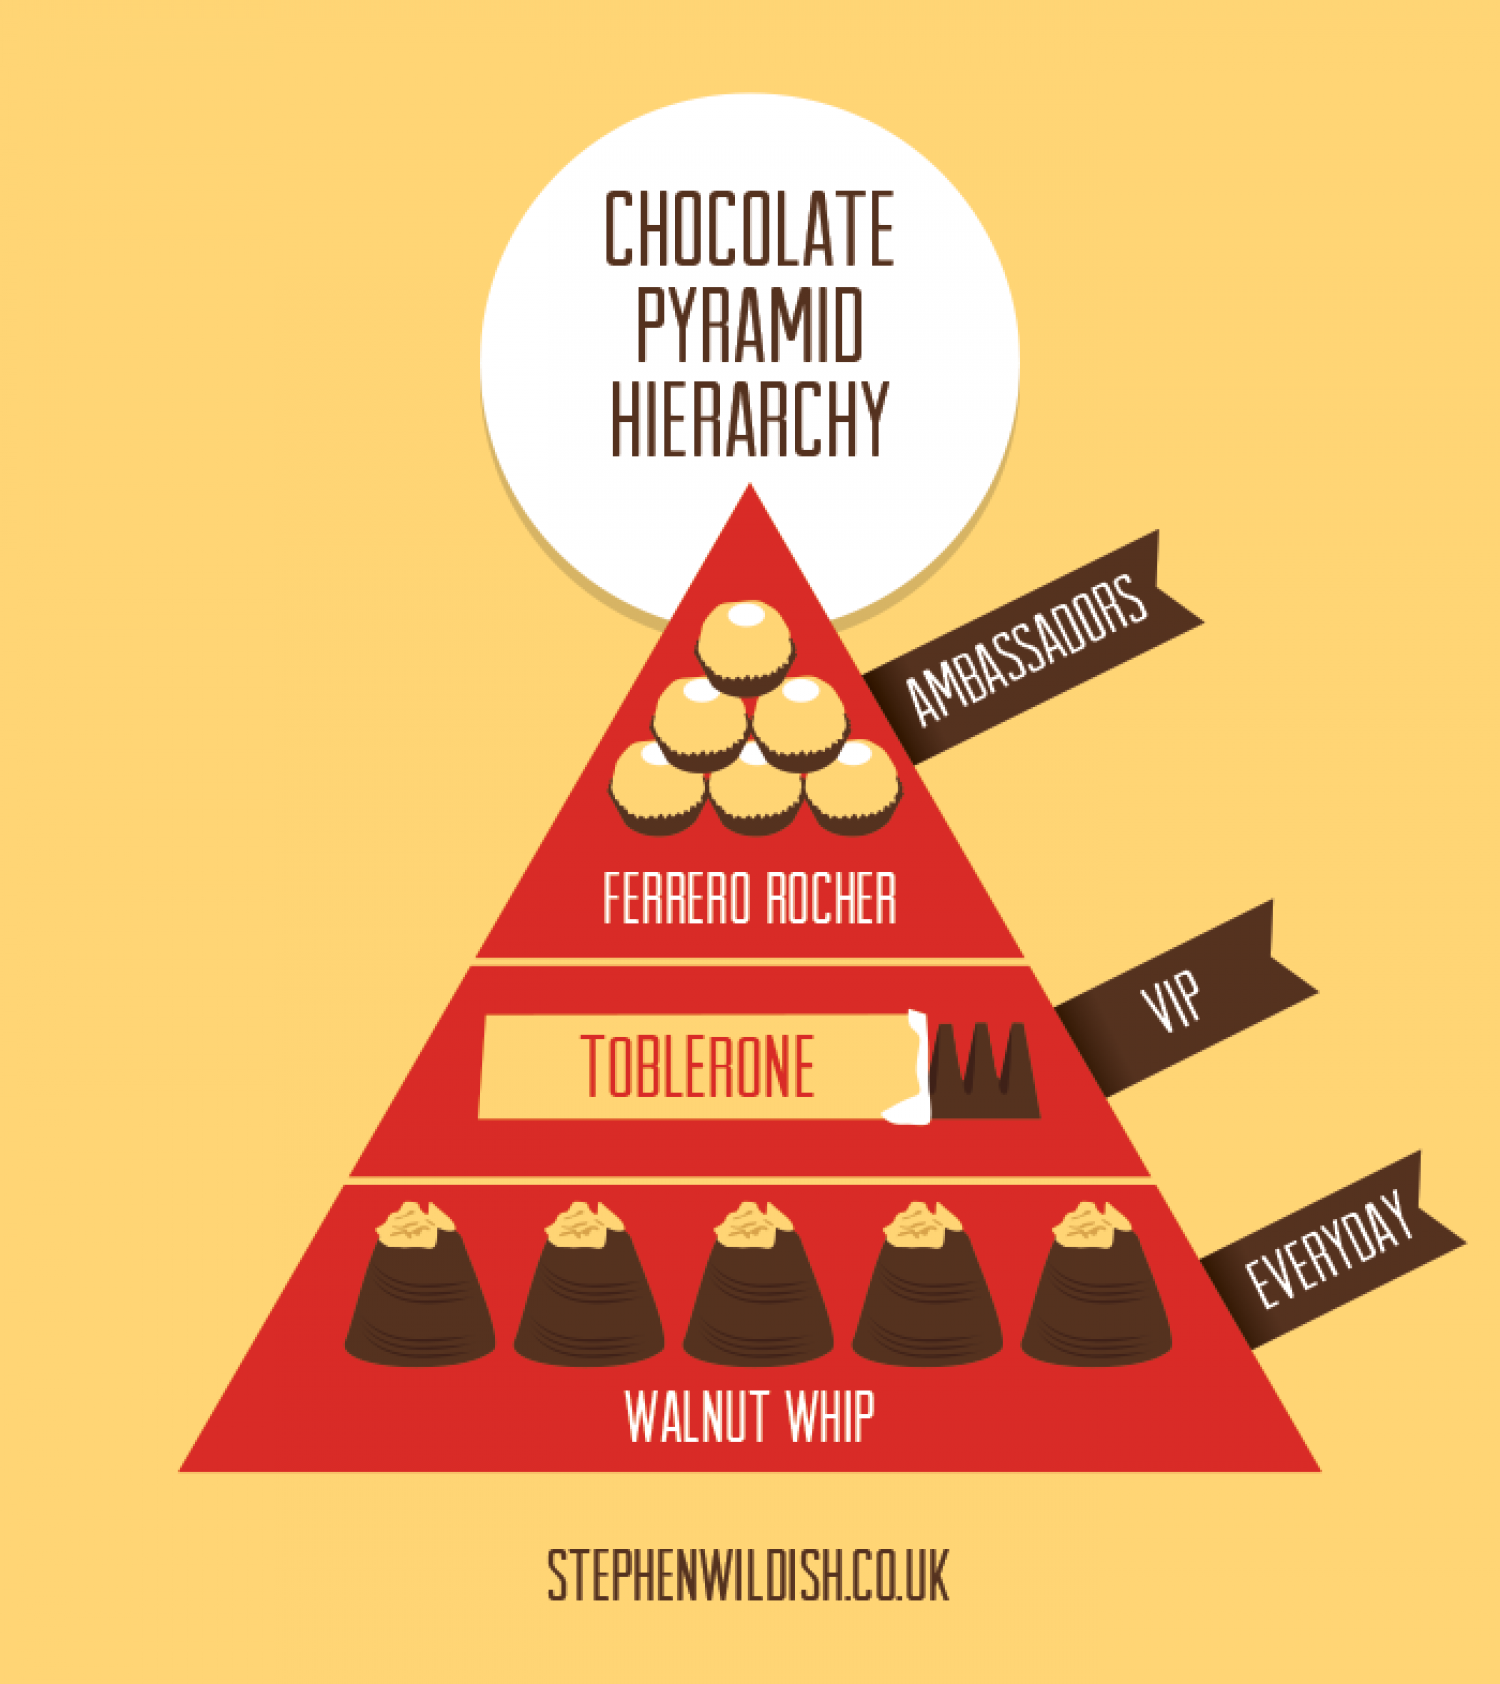 The Chocolate Pyramid Hierarchy Infographic